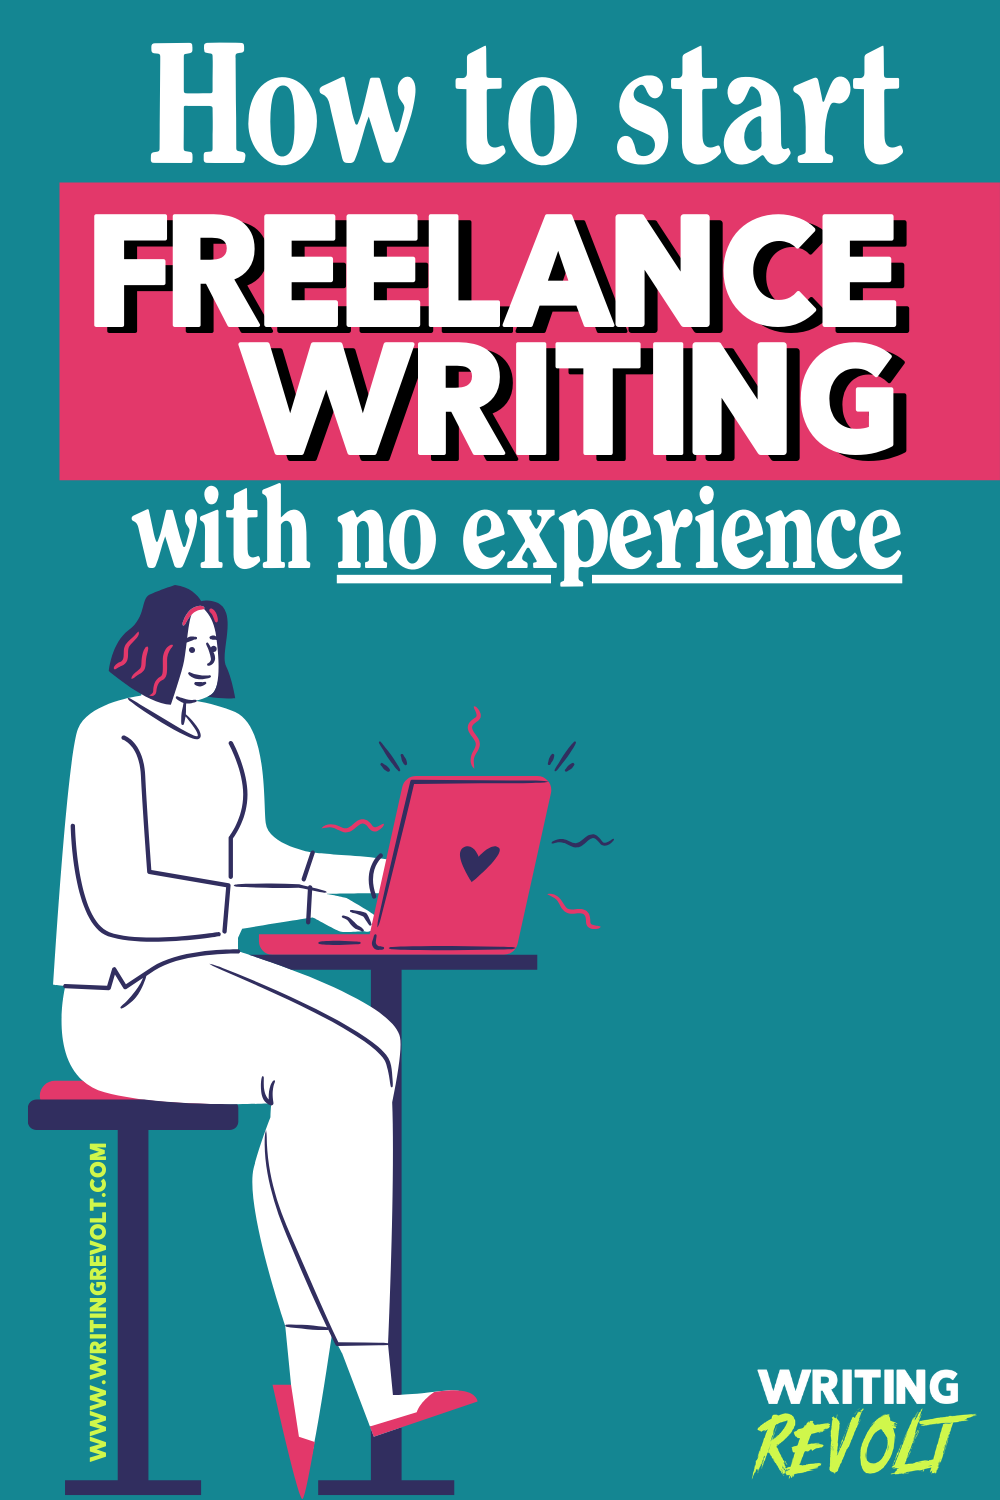 How to Start Freelance Writing With No Experience in 10